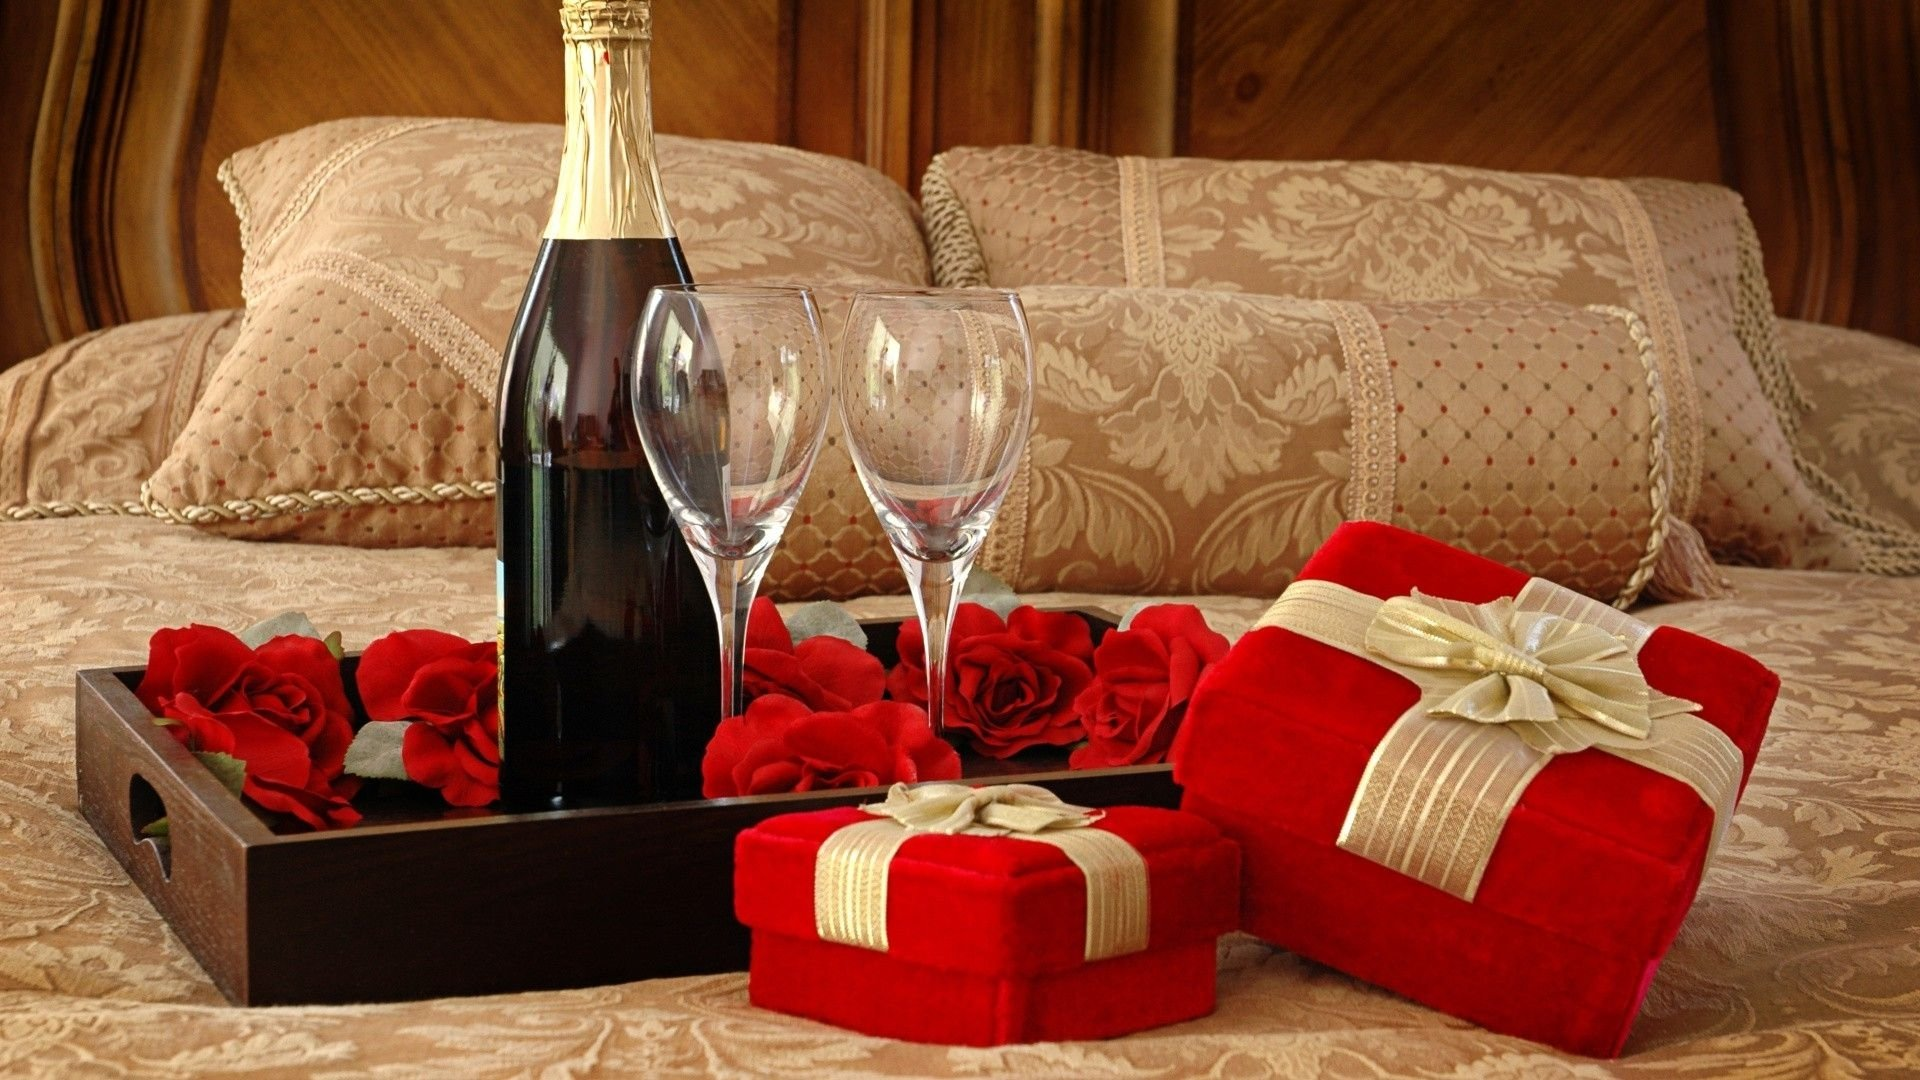 10 Attractive Romantic Birthday Gift Ideas For Him romantic and inexpensive gift ideas for the women in your life 9